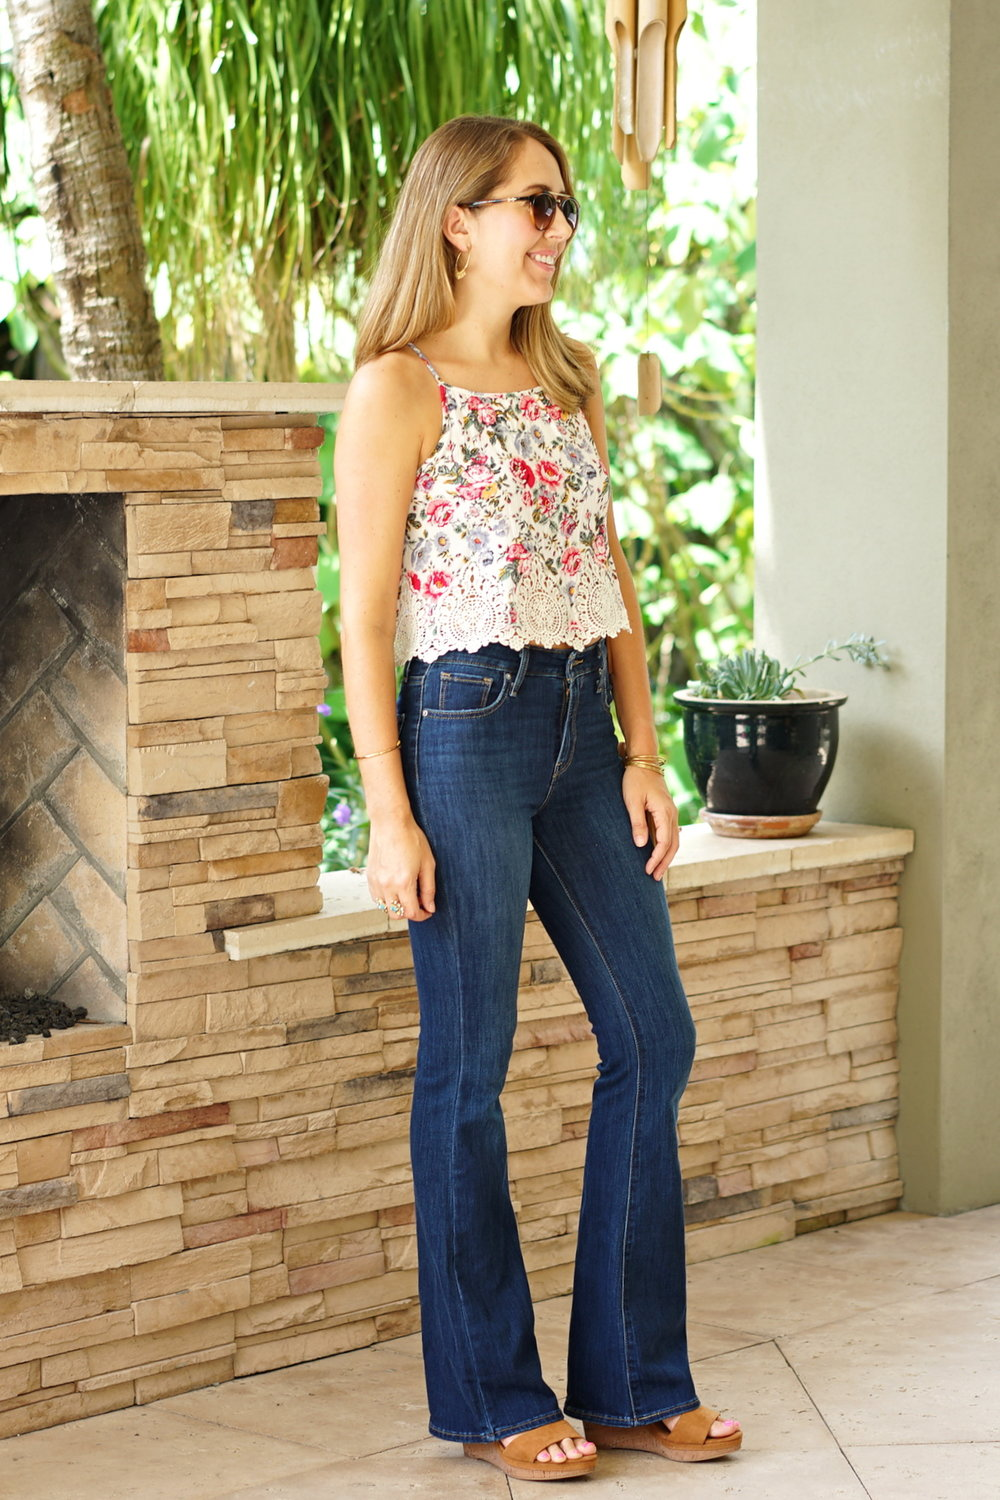 Floral crop top and high waist flares